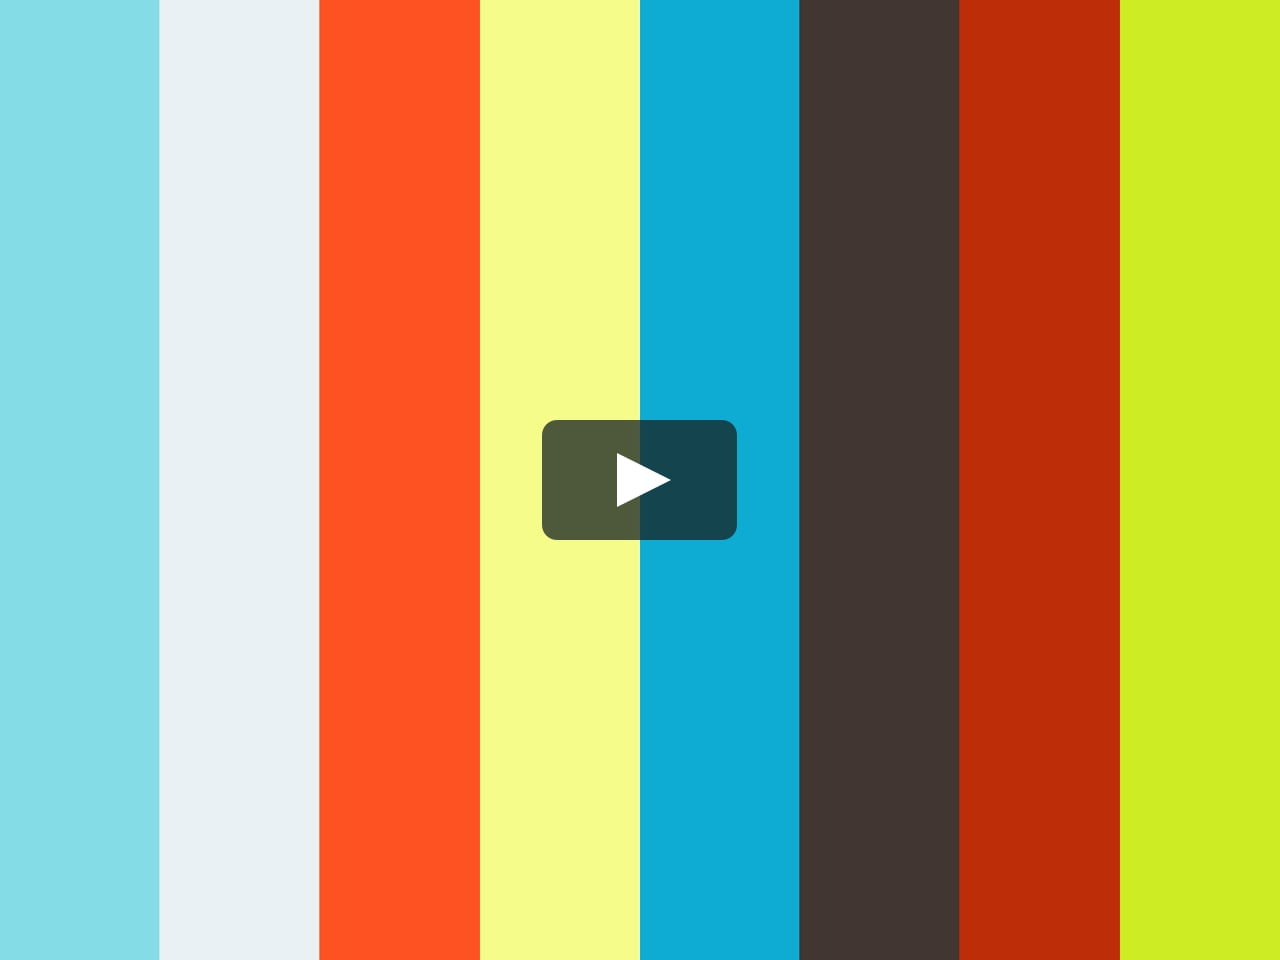 Office Christmas Party (2016) 1080p Online - Movie on Vimeo